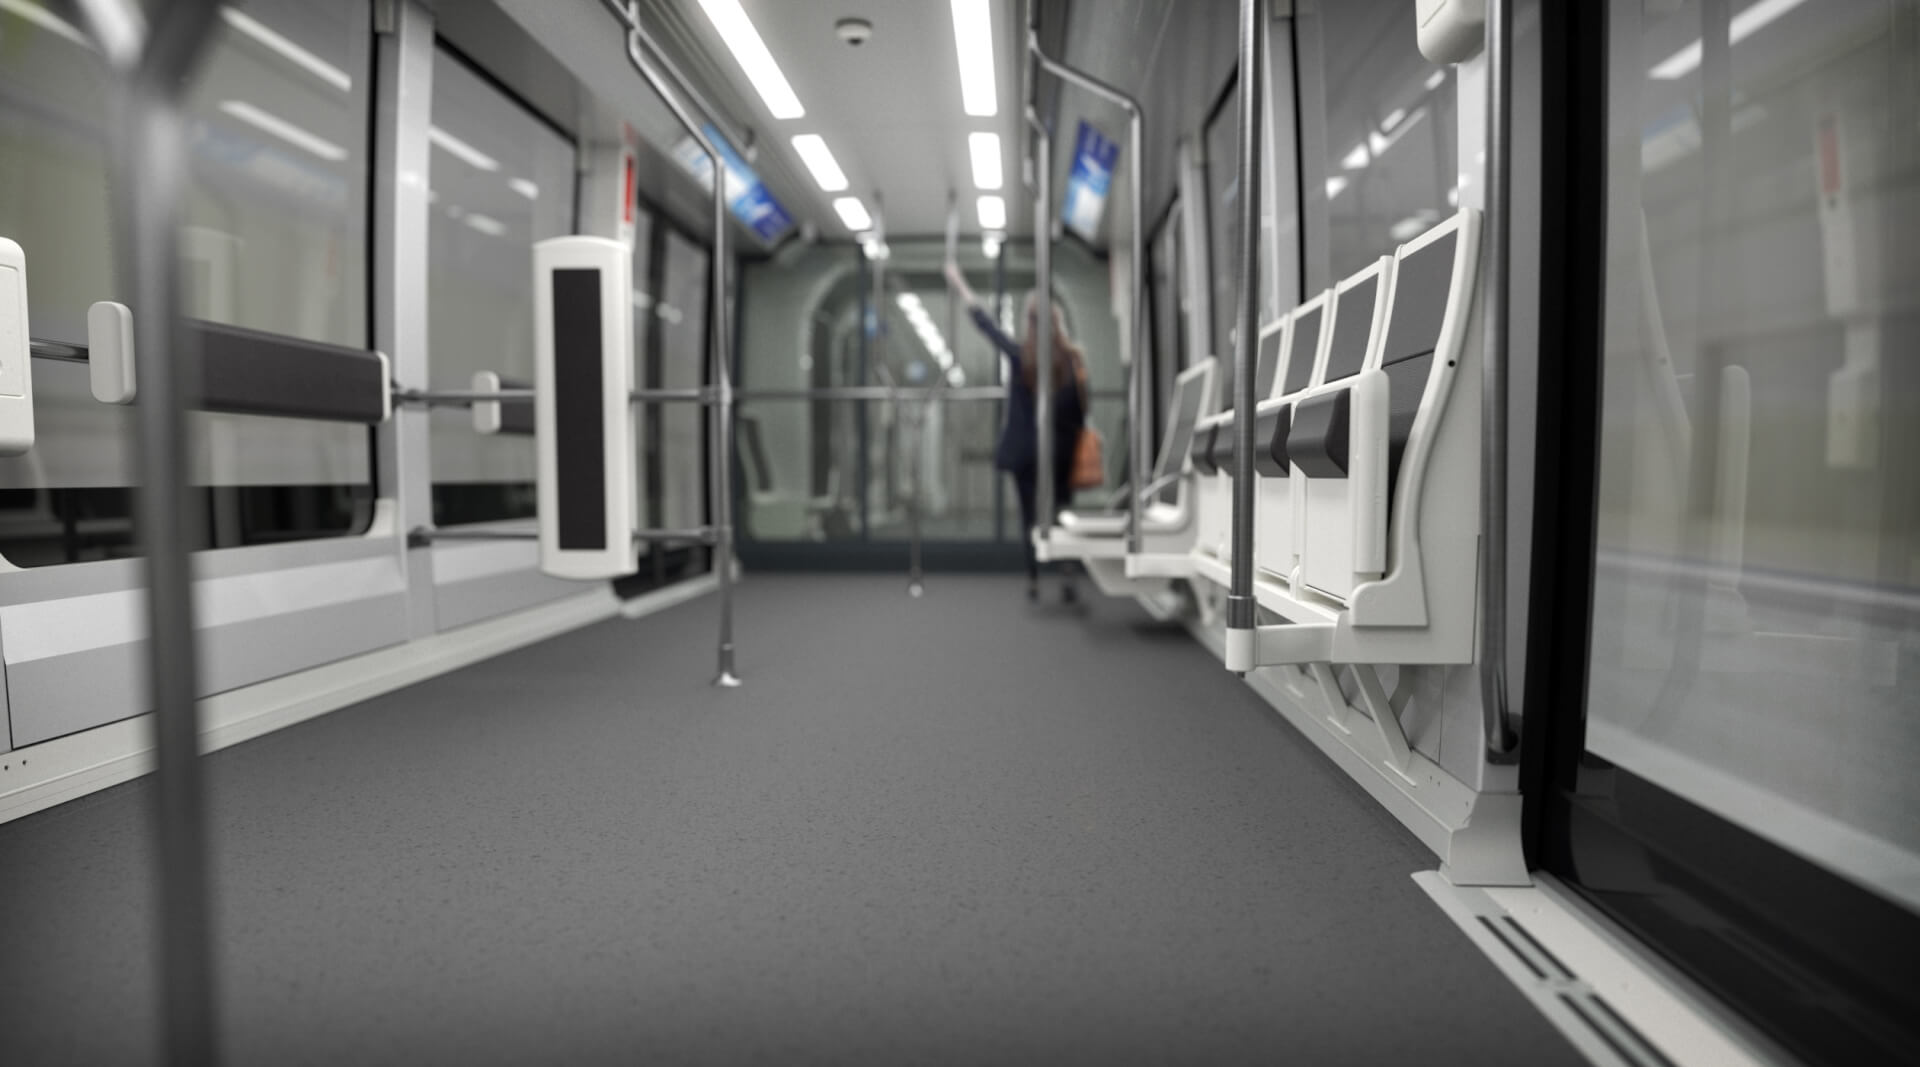 Siemens AirVal, Automated People Mover, Interior, Airport Shuttle,